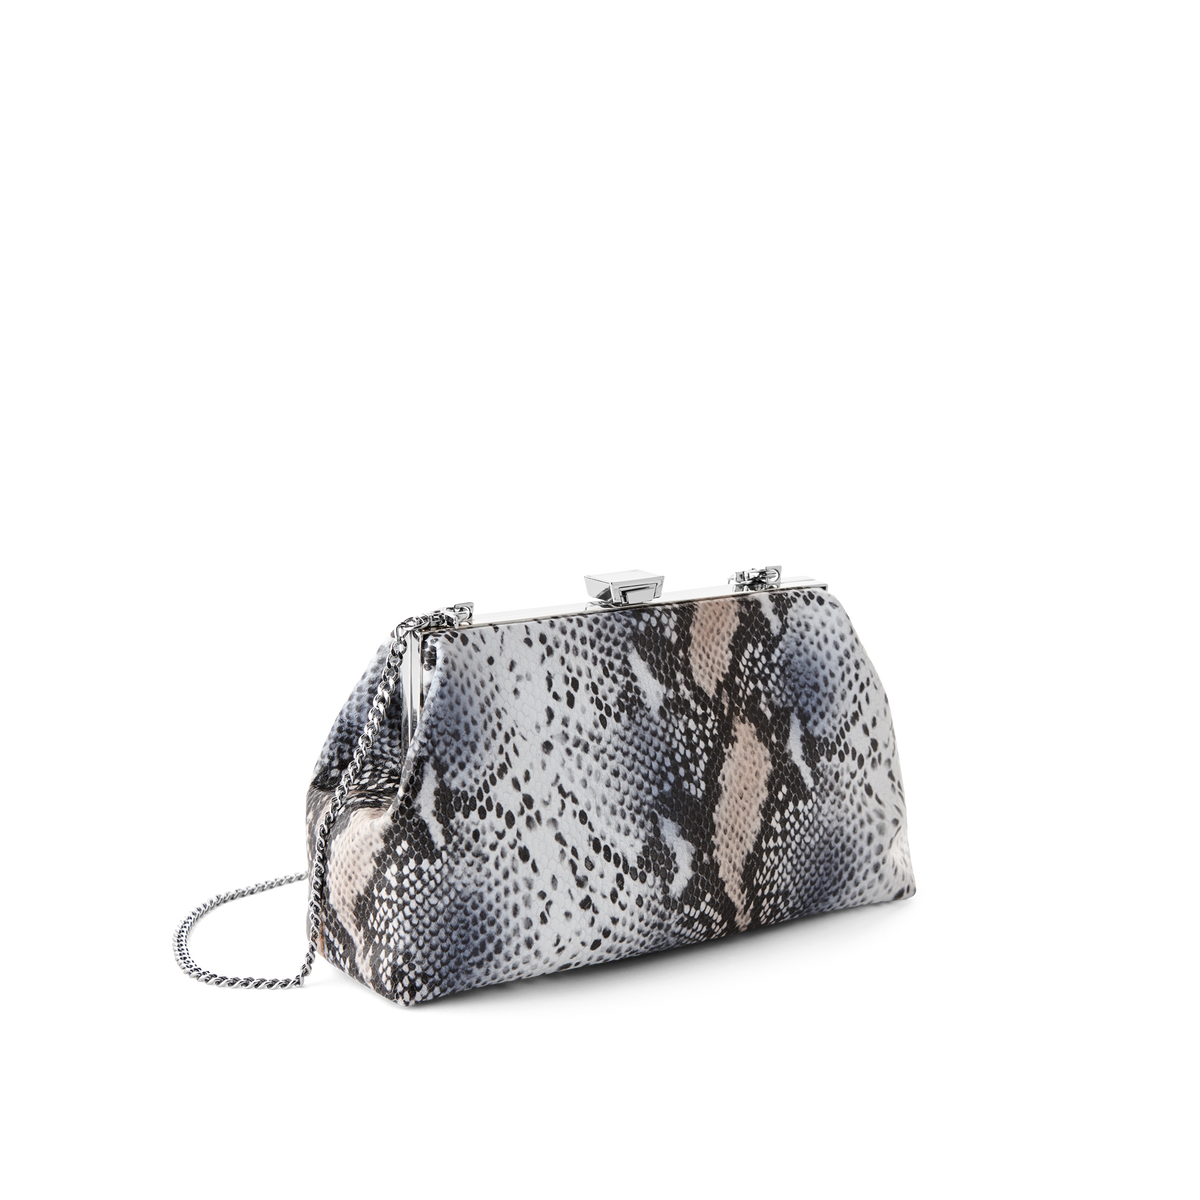 Python Evening Handbag with Silver Chain Strap